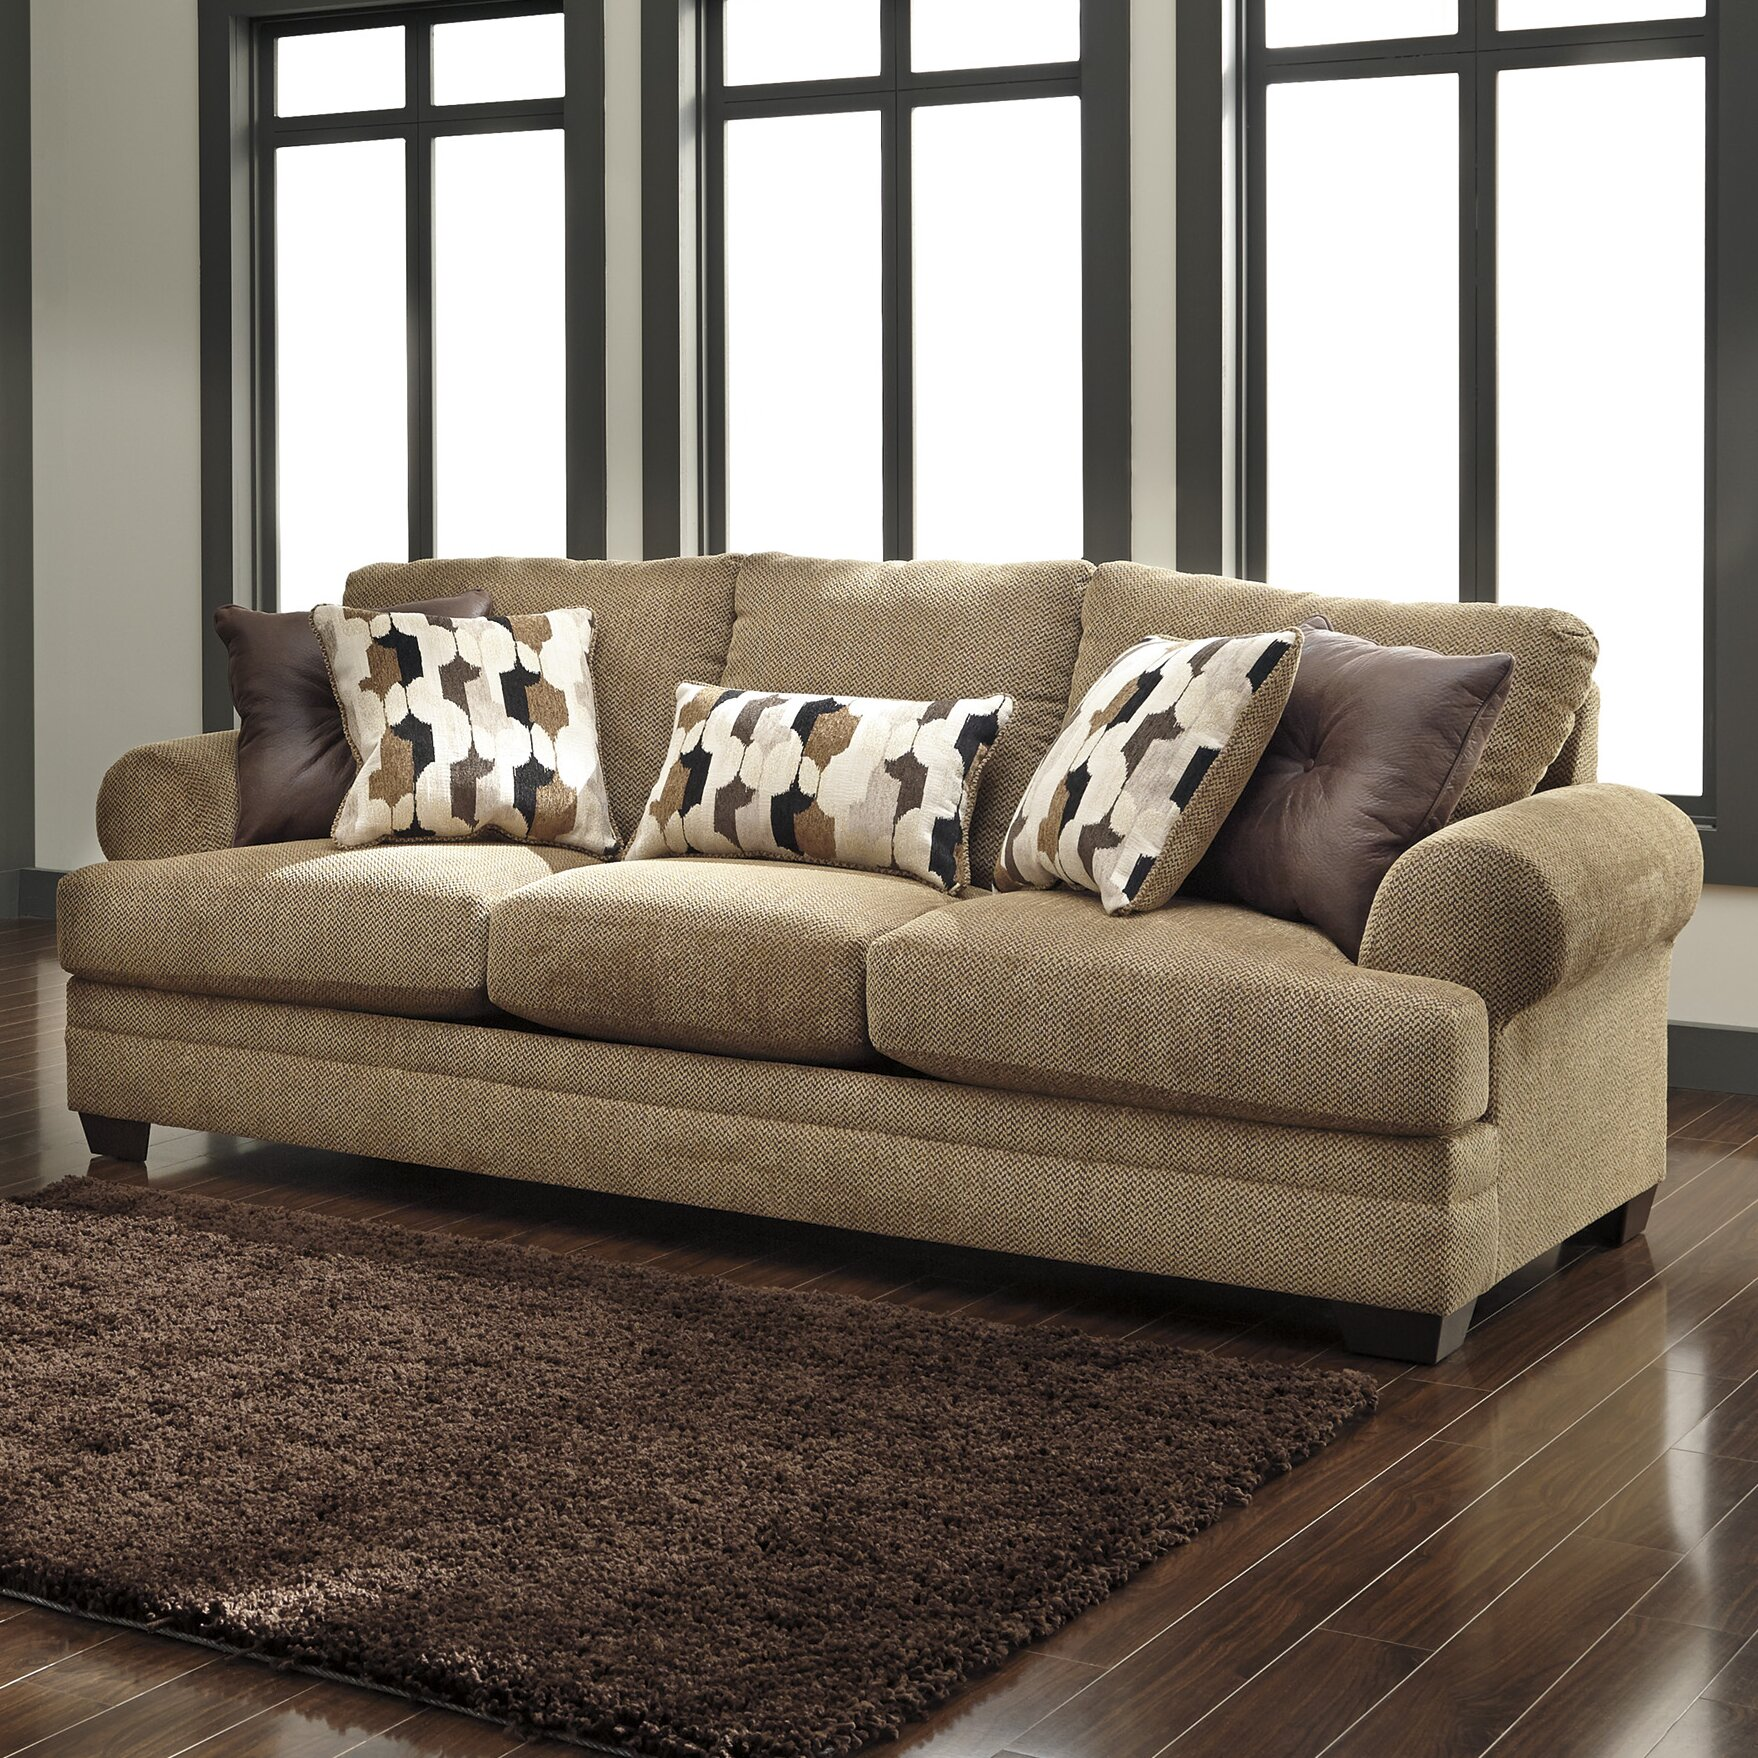 Ashley Furniture Signature Collection